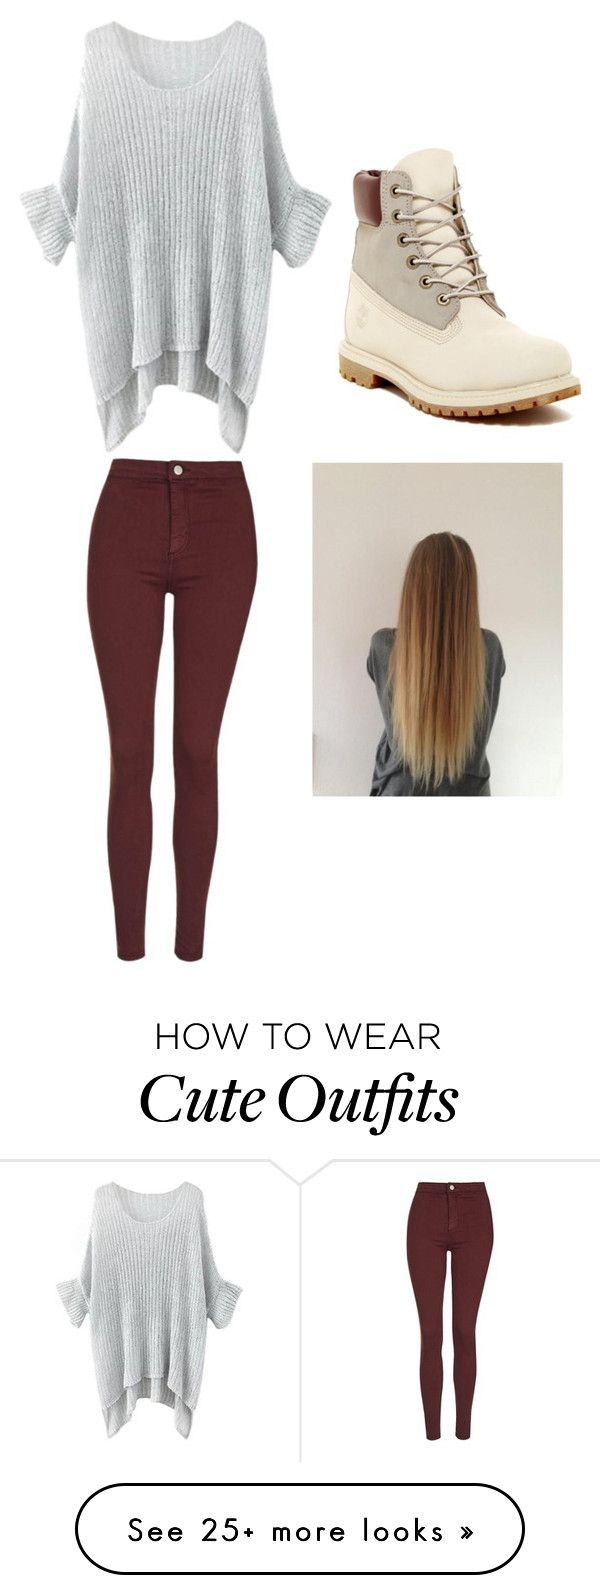 """cute outfit in the winter"" by kellmam on Polyvore featuring mode, Topshop en Timberland"